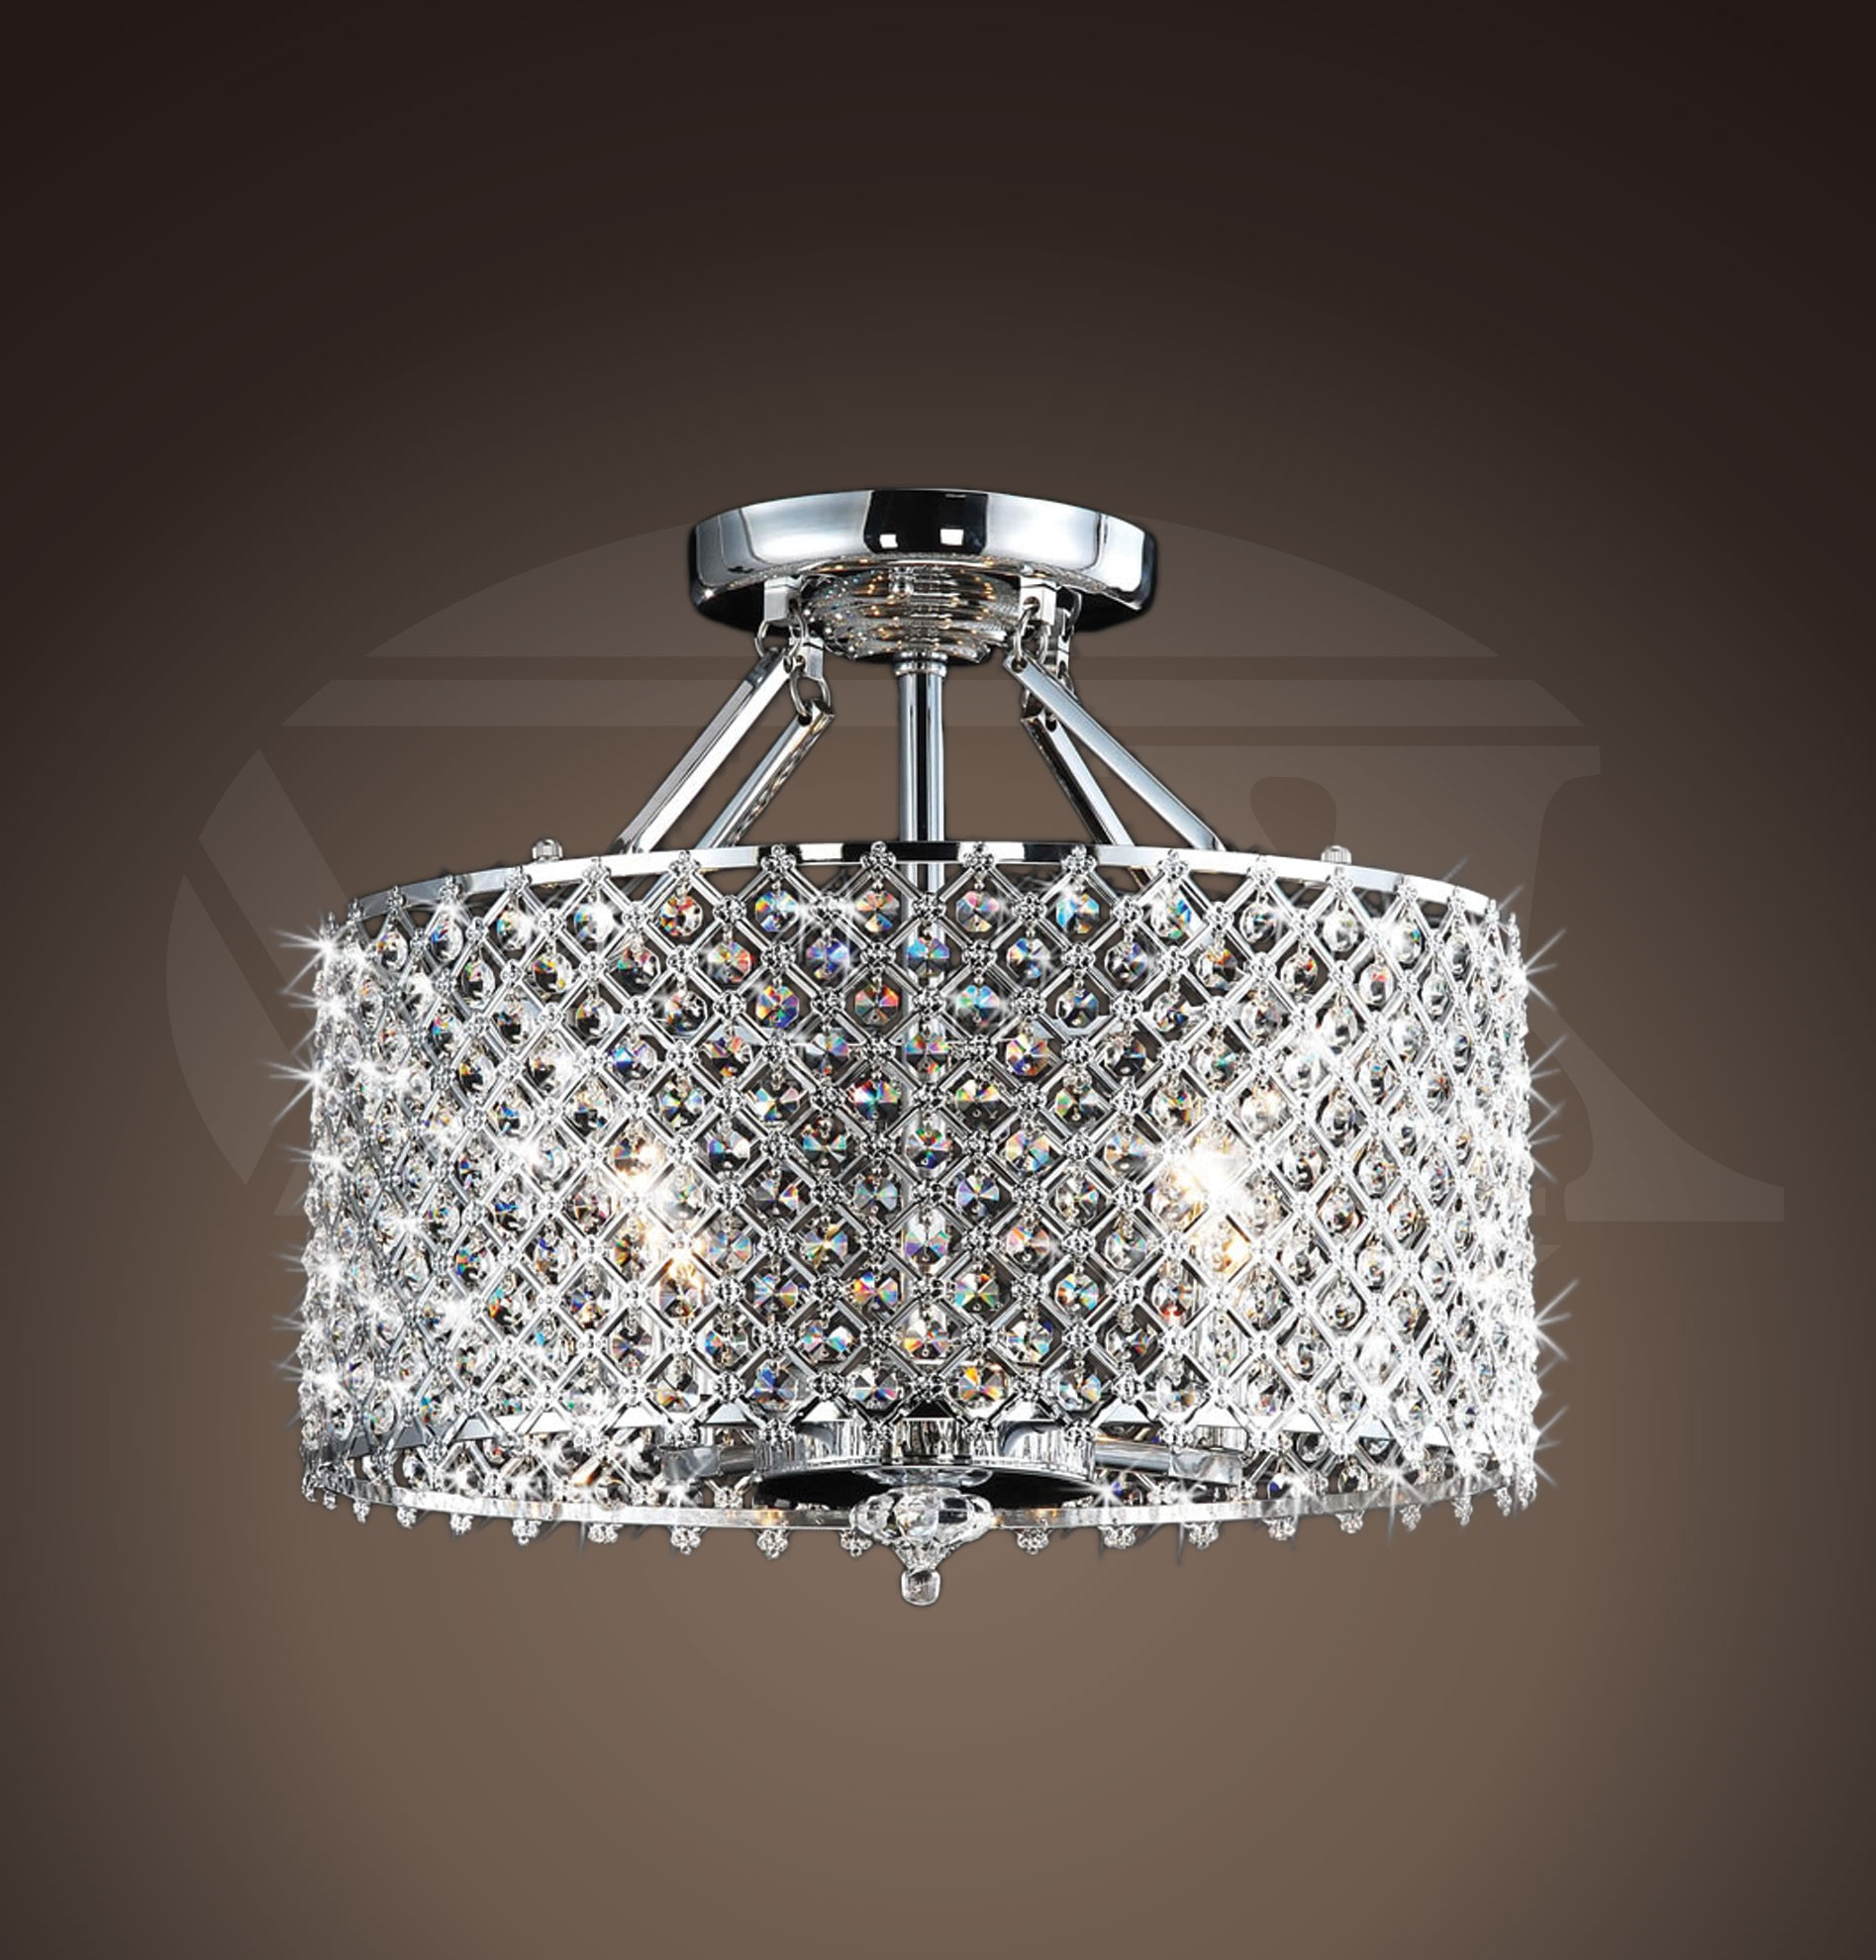 2019 Helina Chrome And Crystal 4 Light Round Ceiling Flush Mount With Regard To Helina 1 Light Pendants (View 1 of 20)